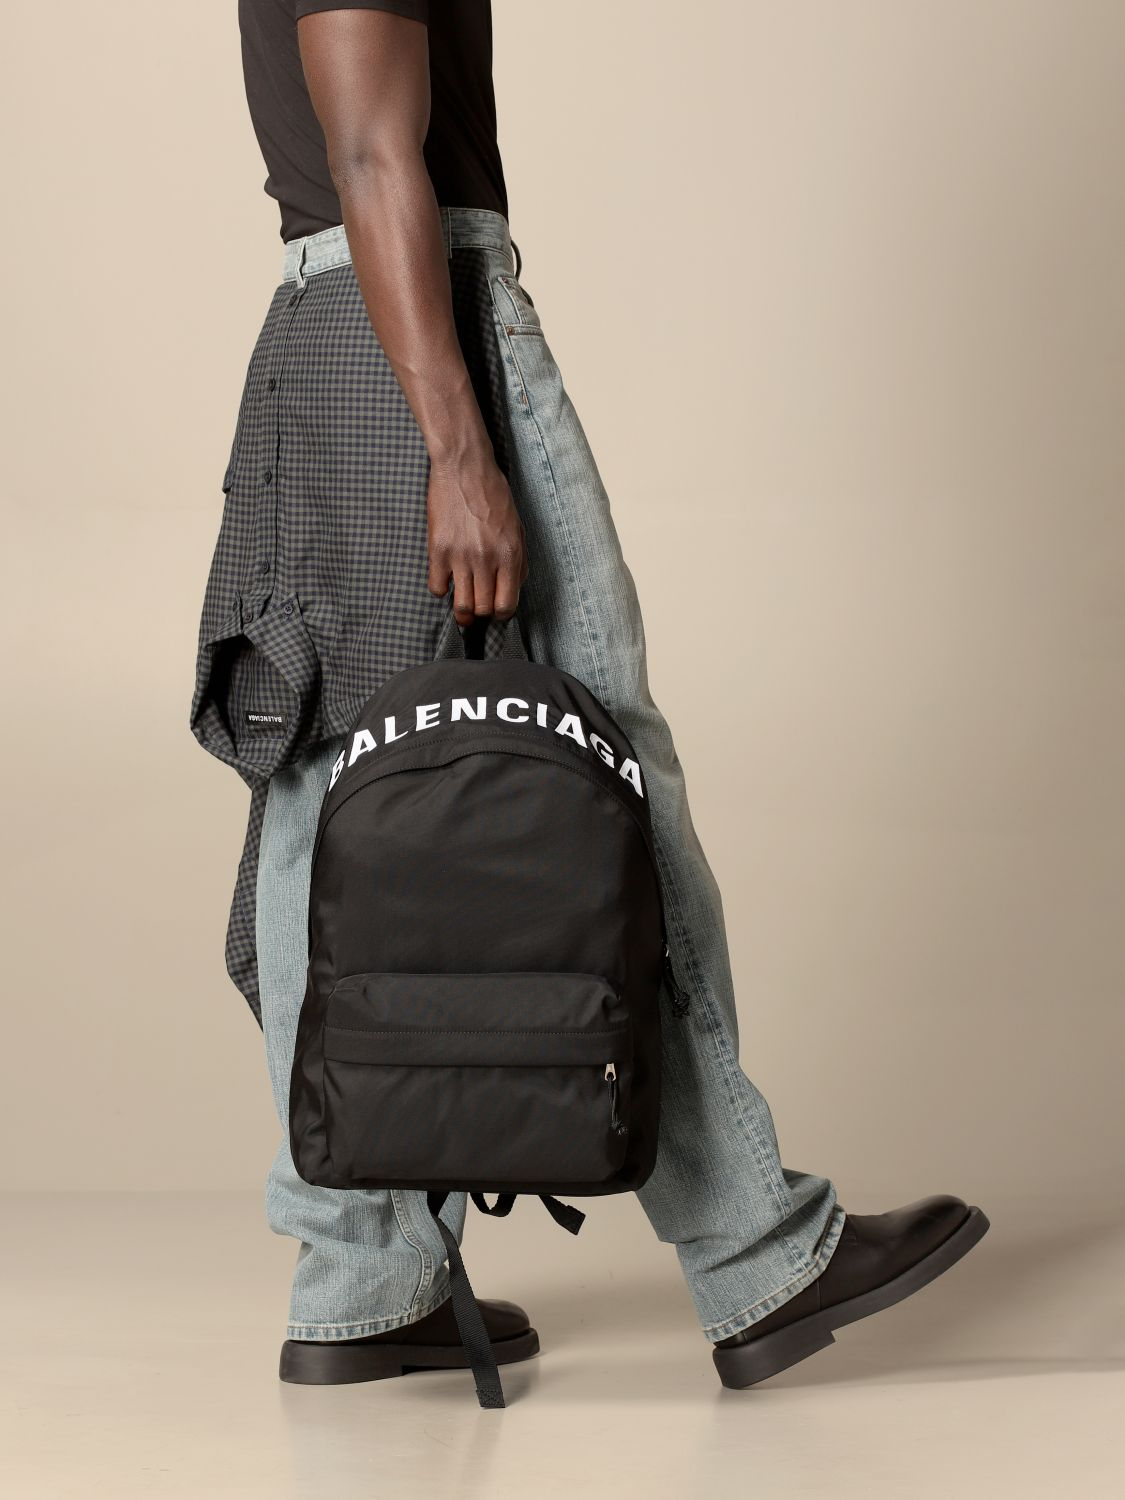 Shoulder bag Balenciaga: Balenciaga nylon backpack black 2